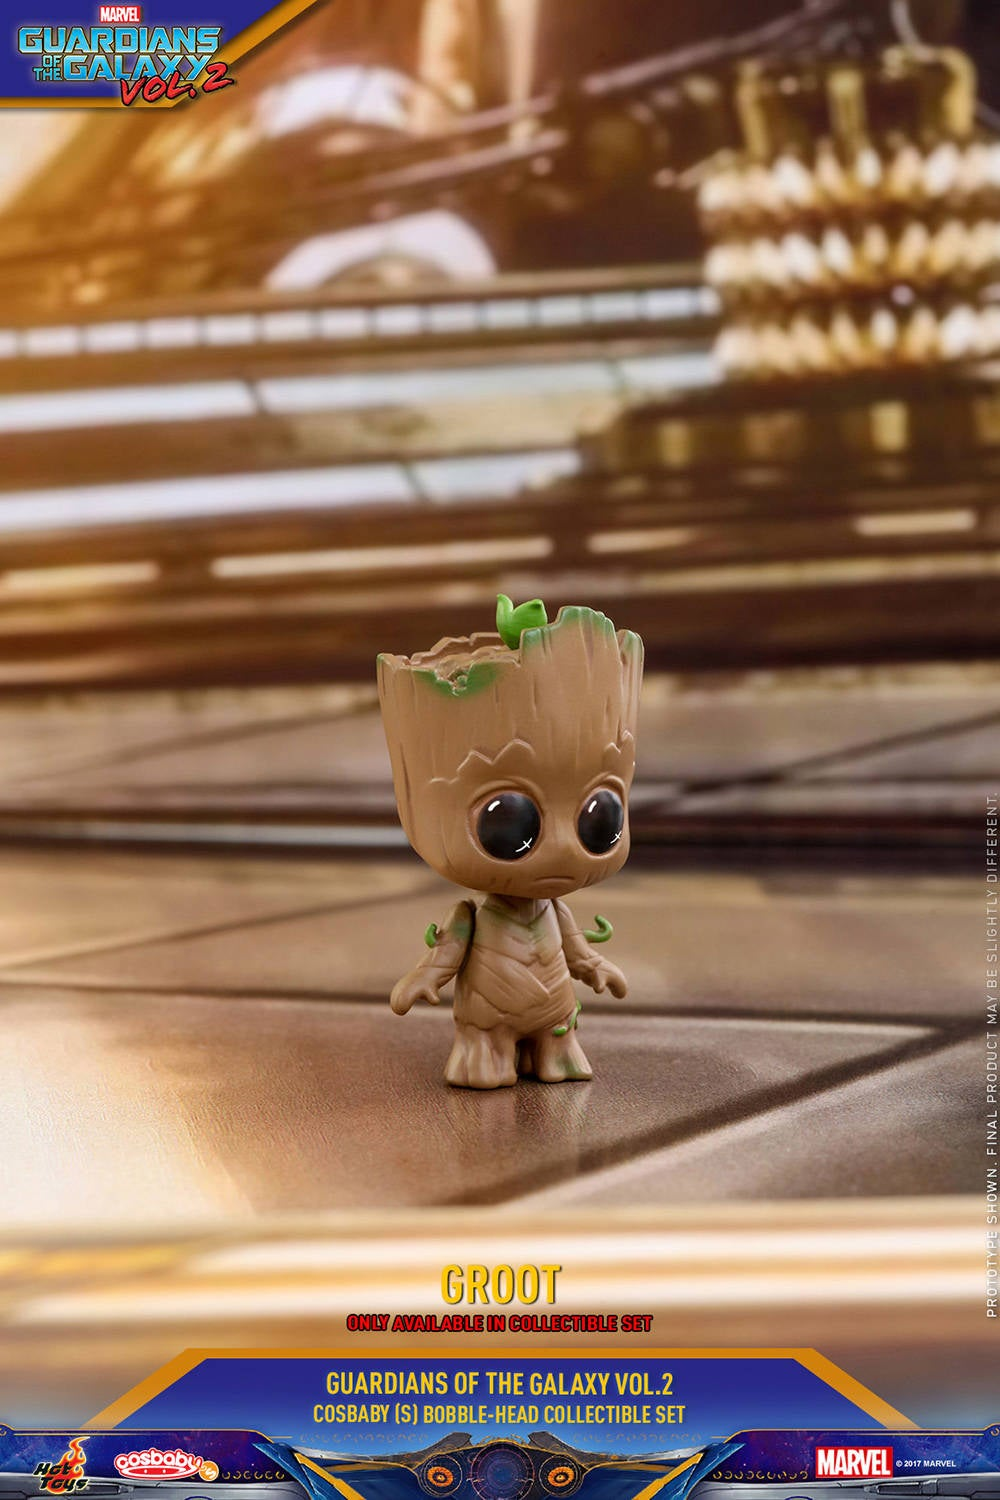 Hot Toys - GOTG vol 2 - Collectible-Set PR9 (only available in set)